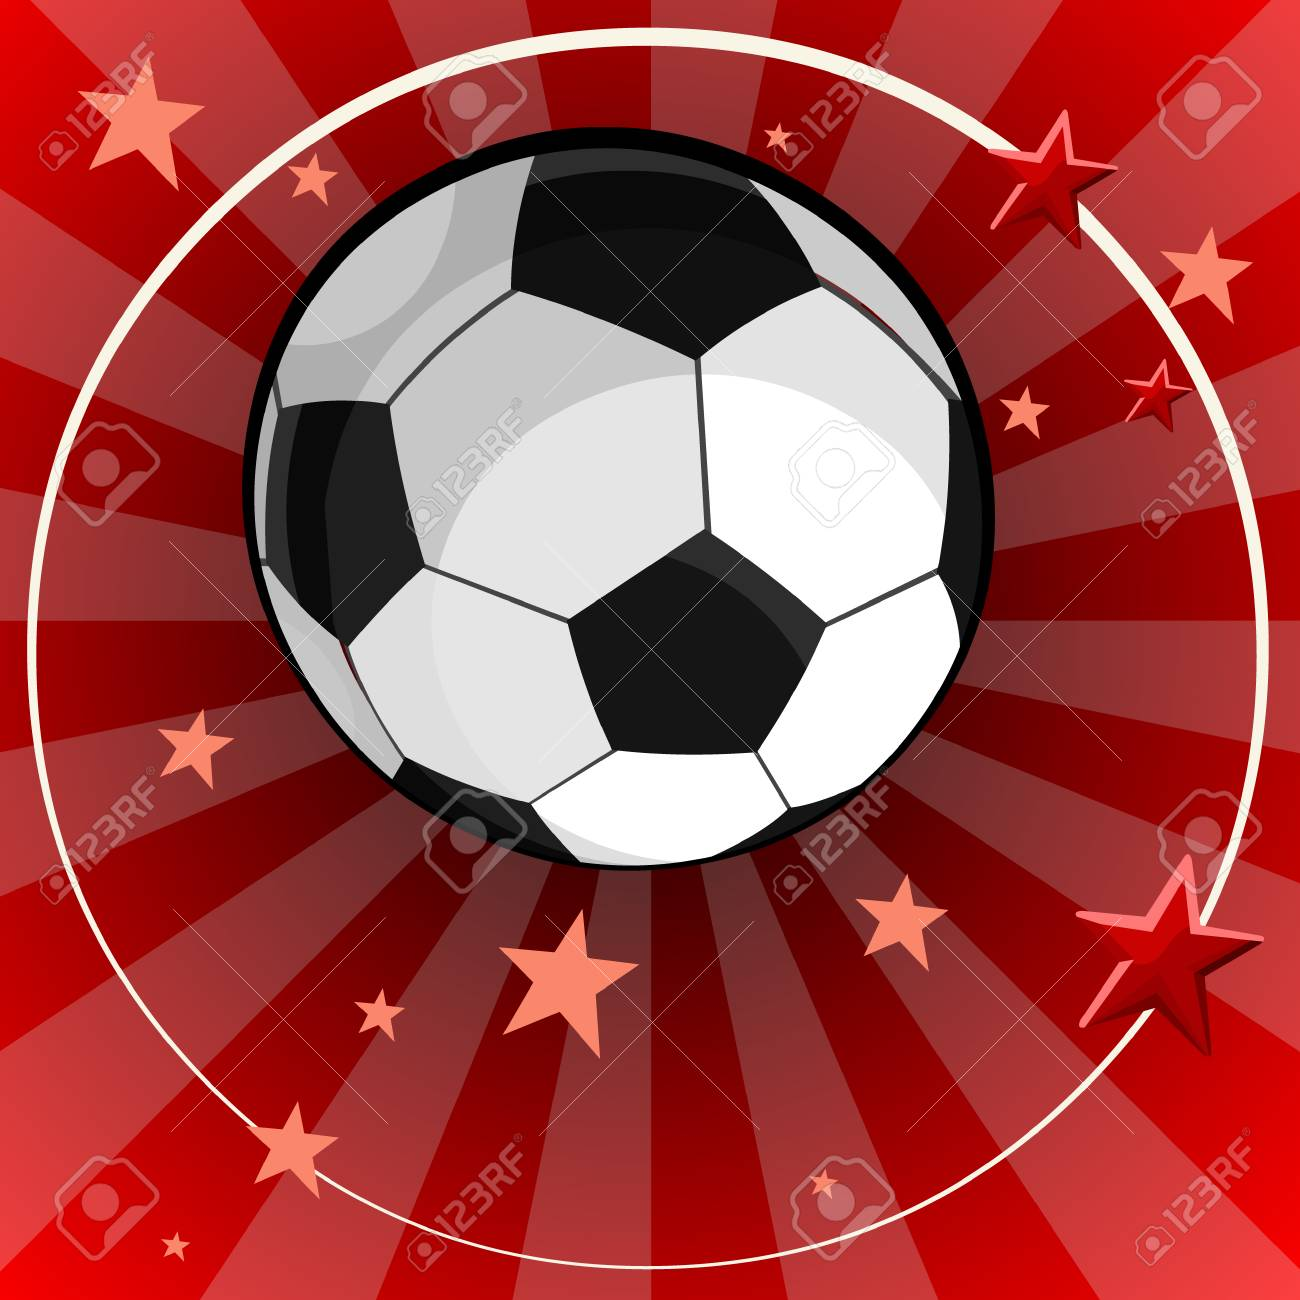 d56d7facd7279 soccer ball on red striped background with stars Stock Vector - 104241978